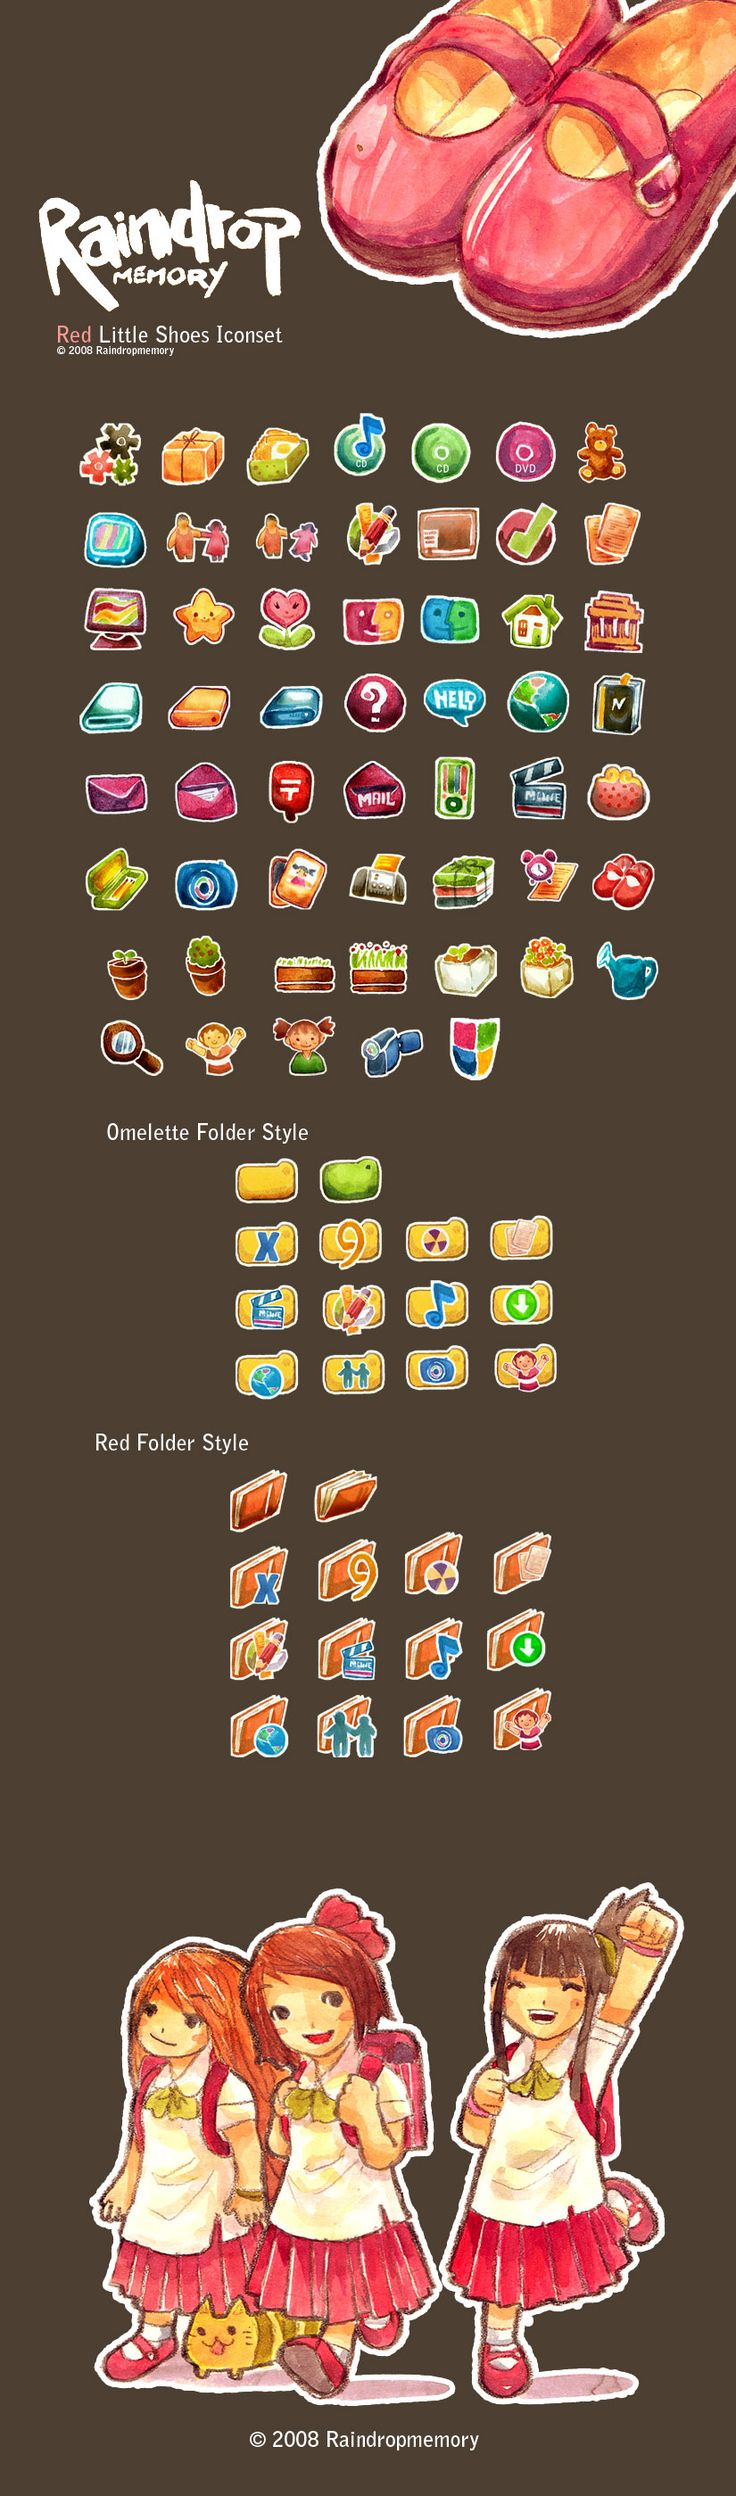 Red Little Shoes Icon set by ~Raindropmemory on deviantART